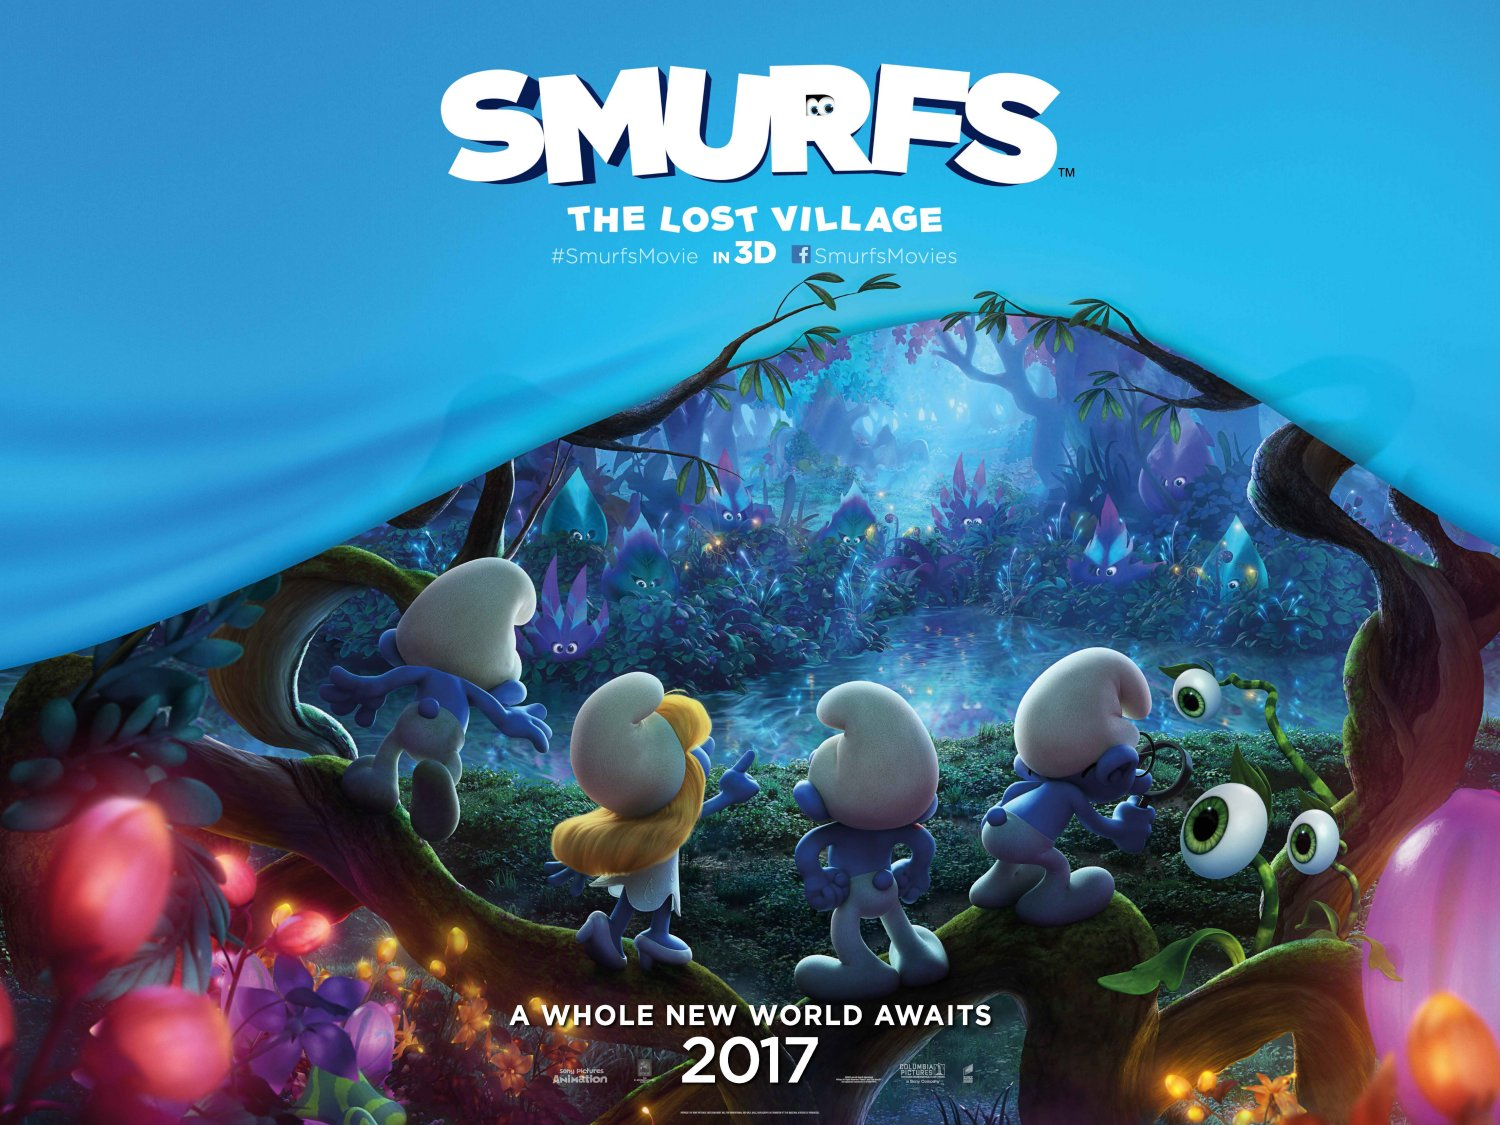 Smurfs – The lost village teaser poster